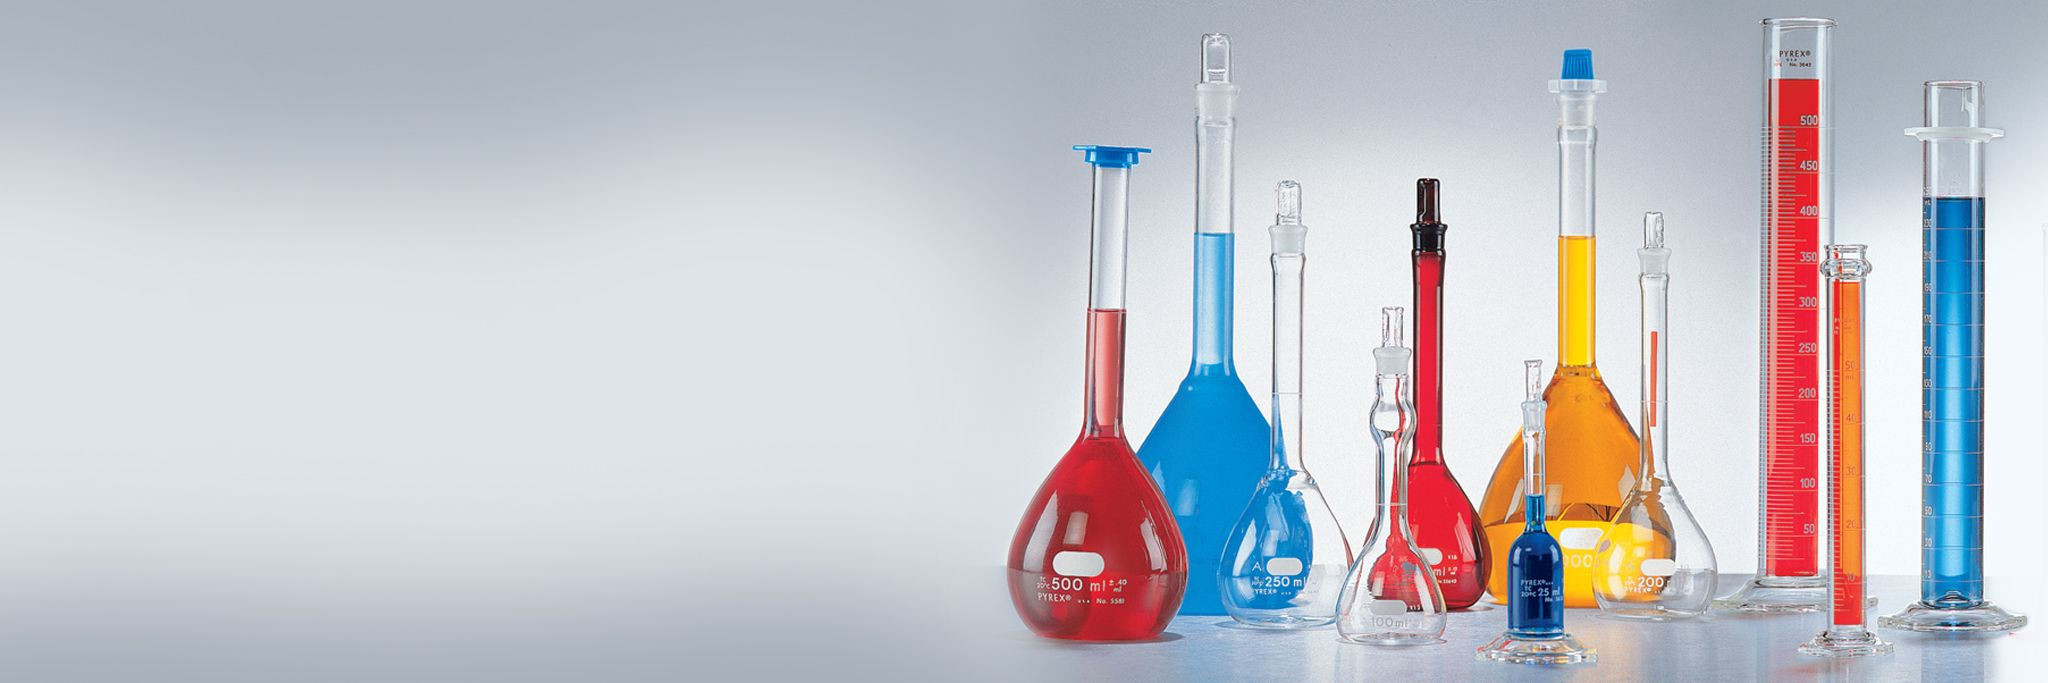 pyrex brand products life sciences and labware brands corning